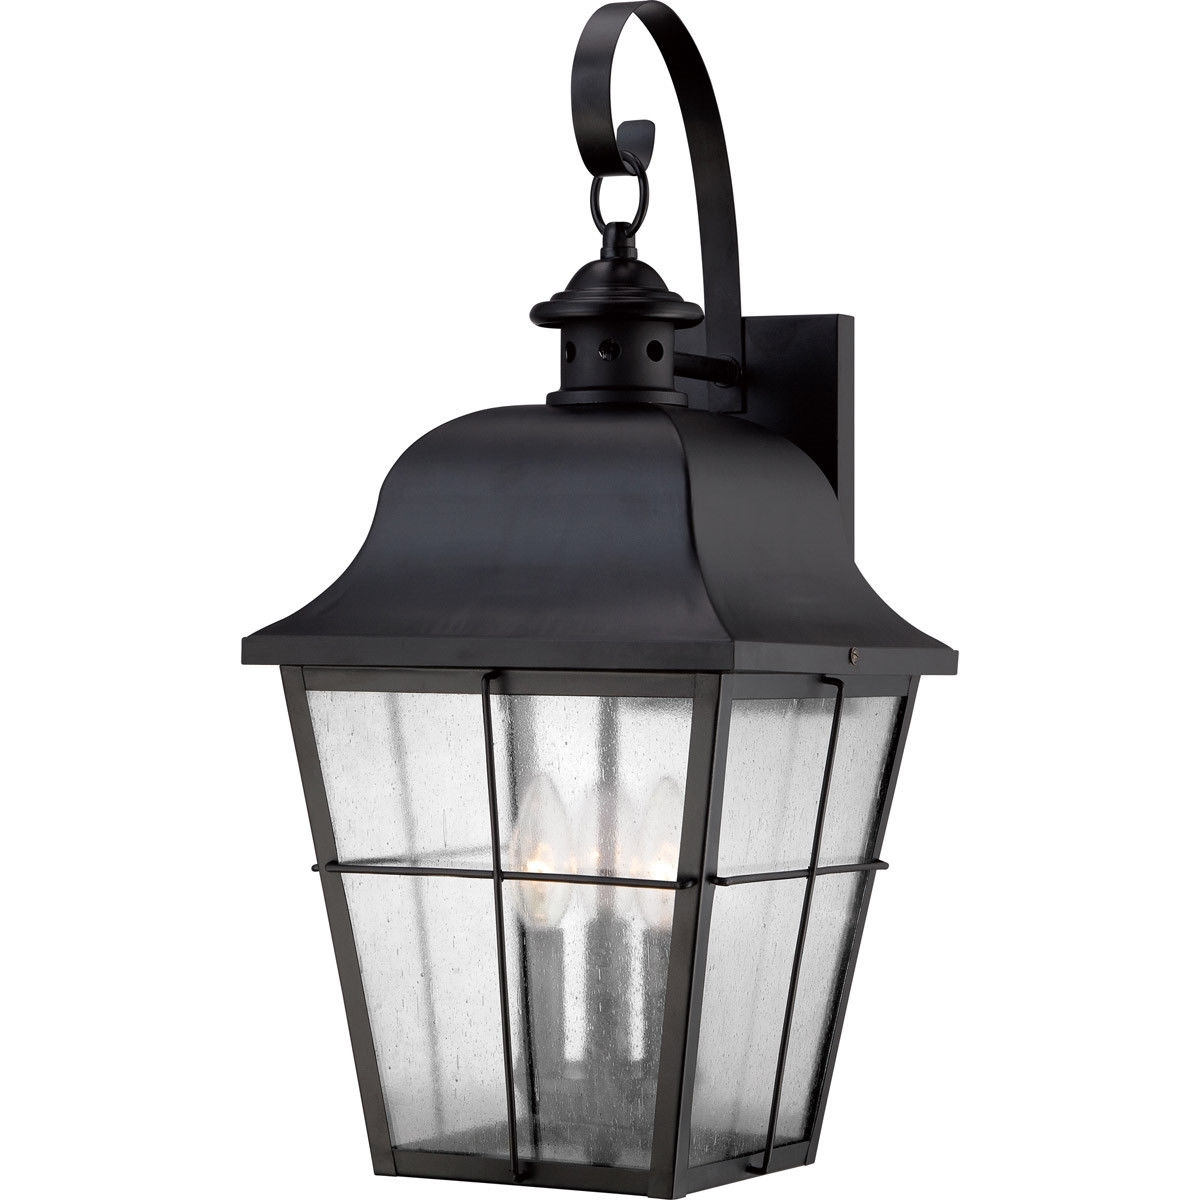 2018 Quoizel Mhe8410K Millhouse 3 Light 22 Inch Mystic Black Outdoor Wall Within Quoizel Outdoor Lanterns (View 1 of 20)